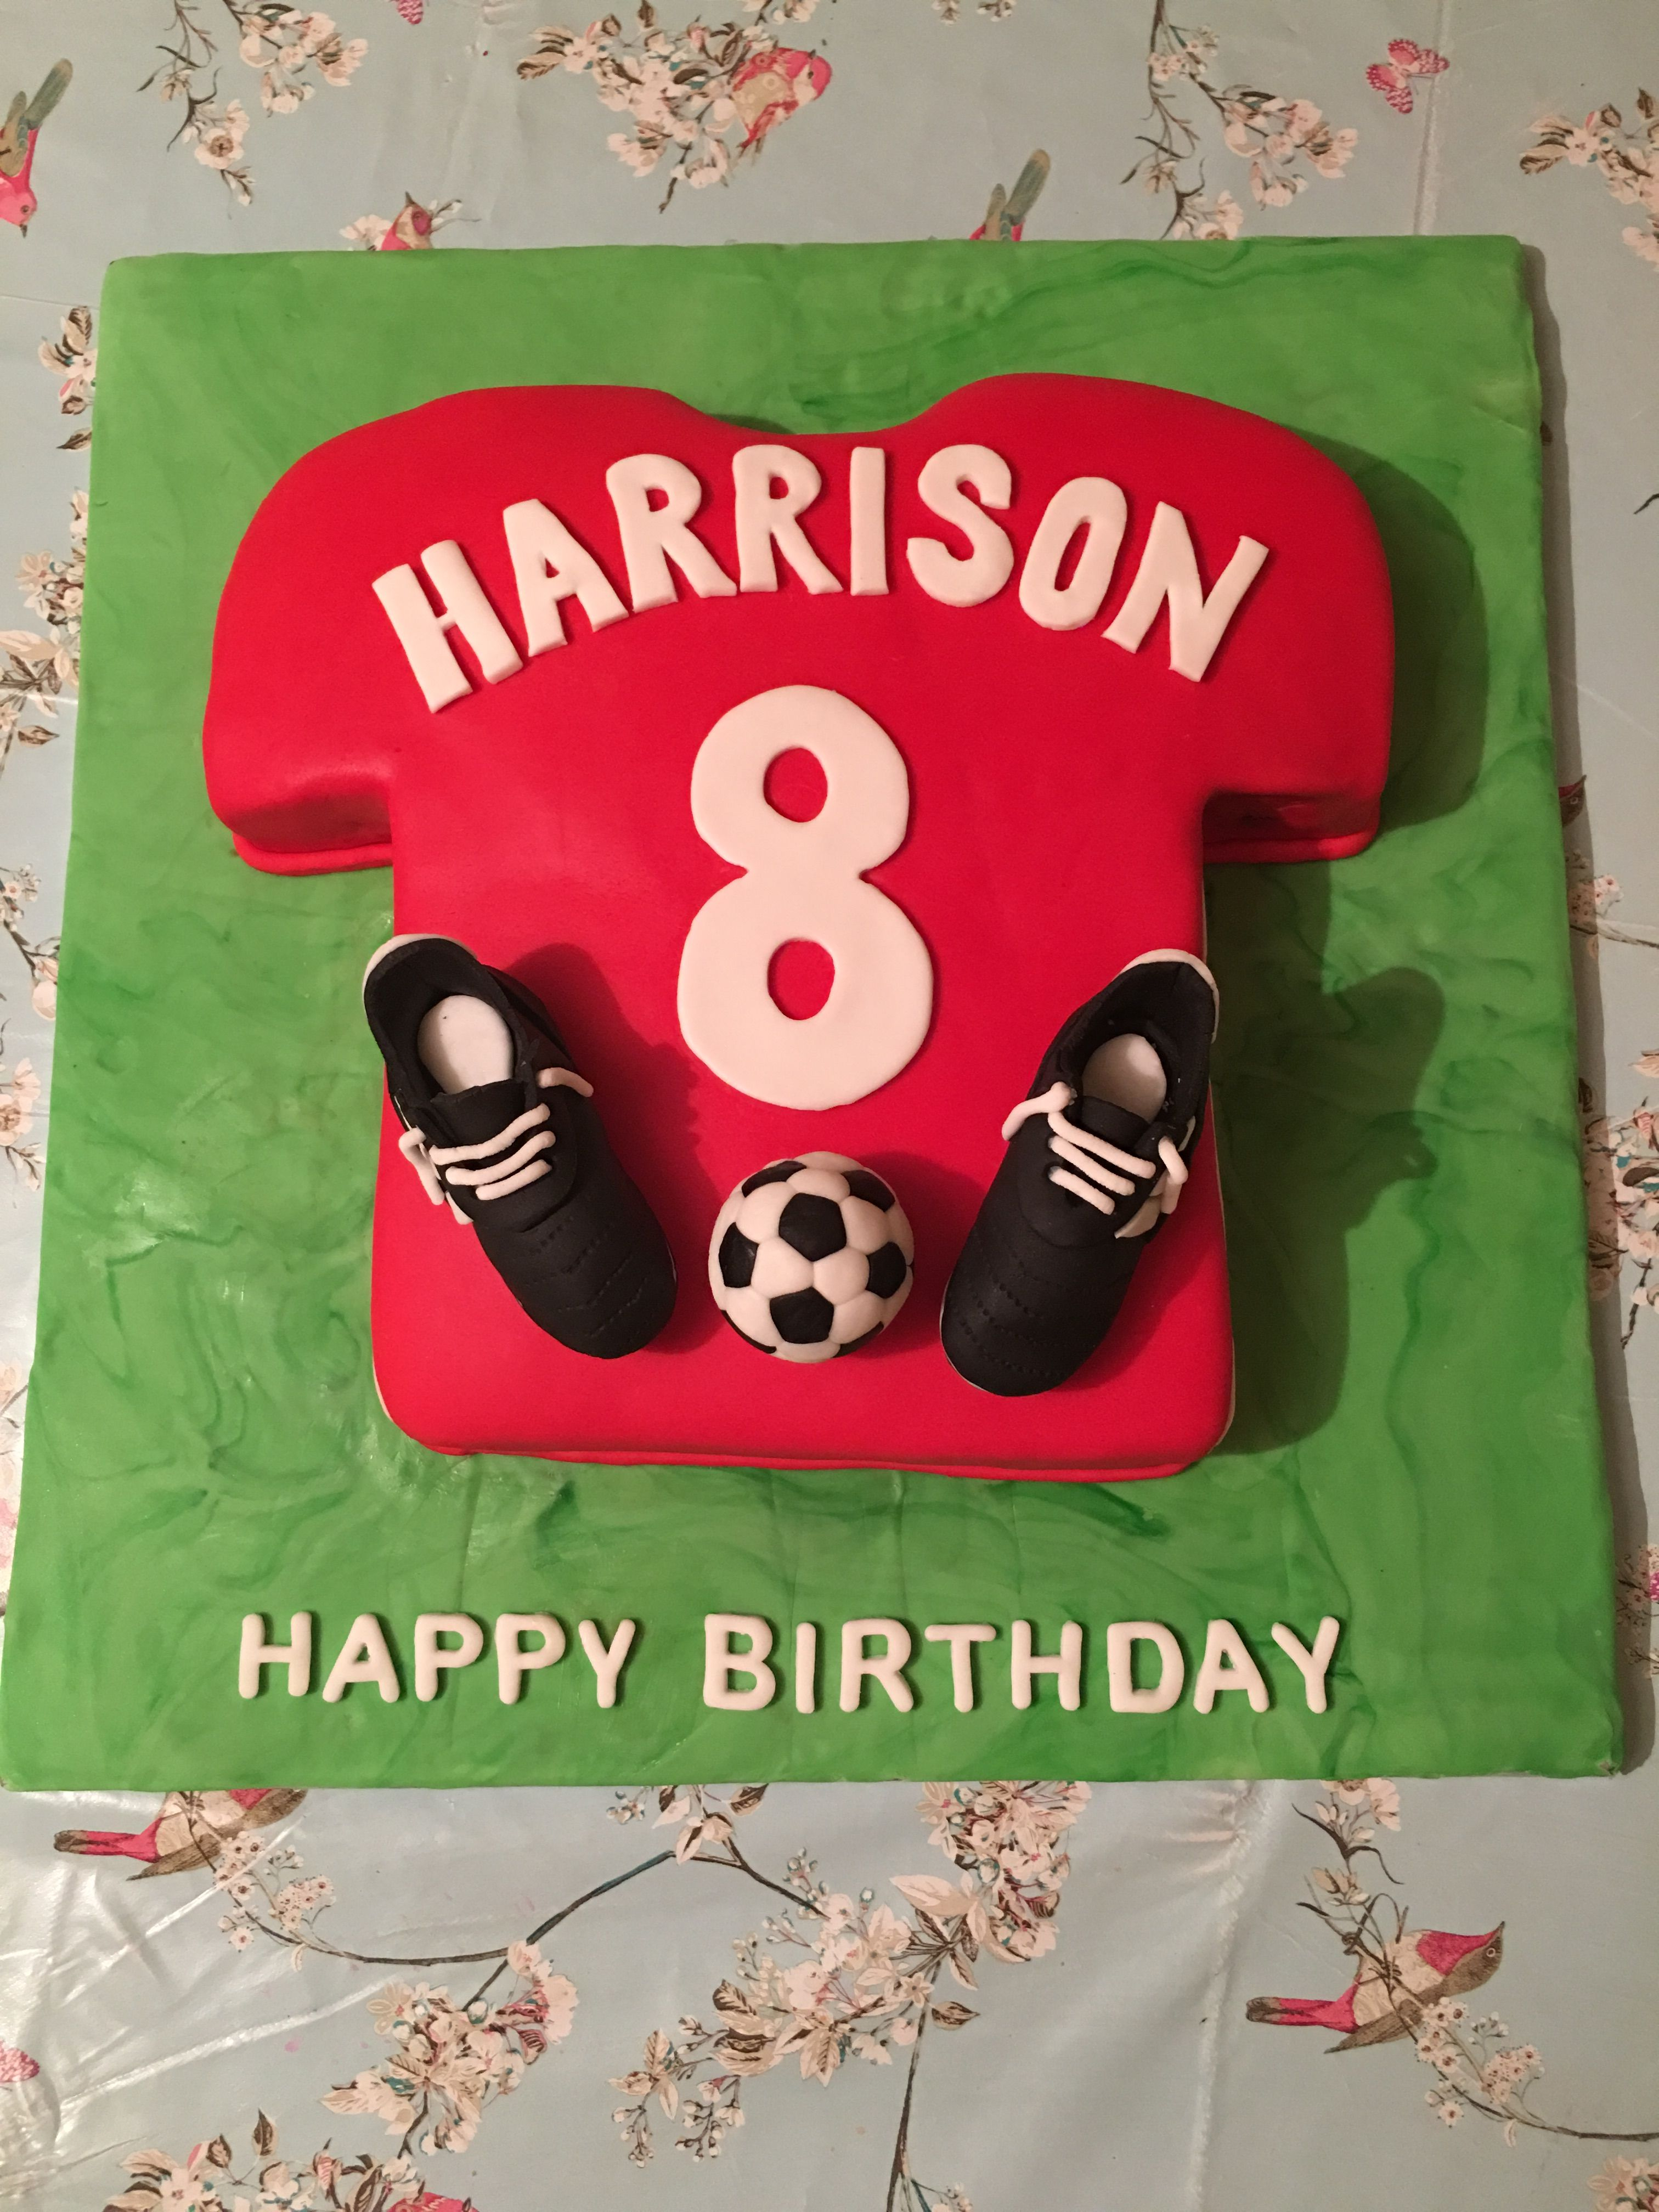 Pin on Harrison's cake